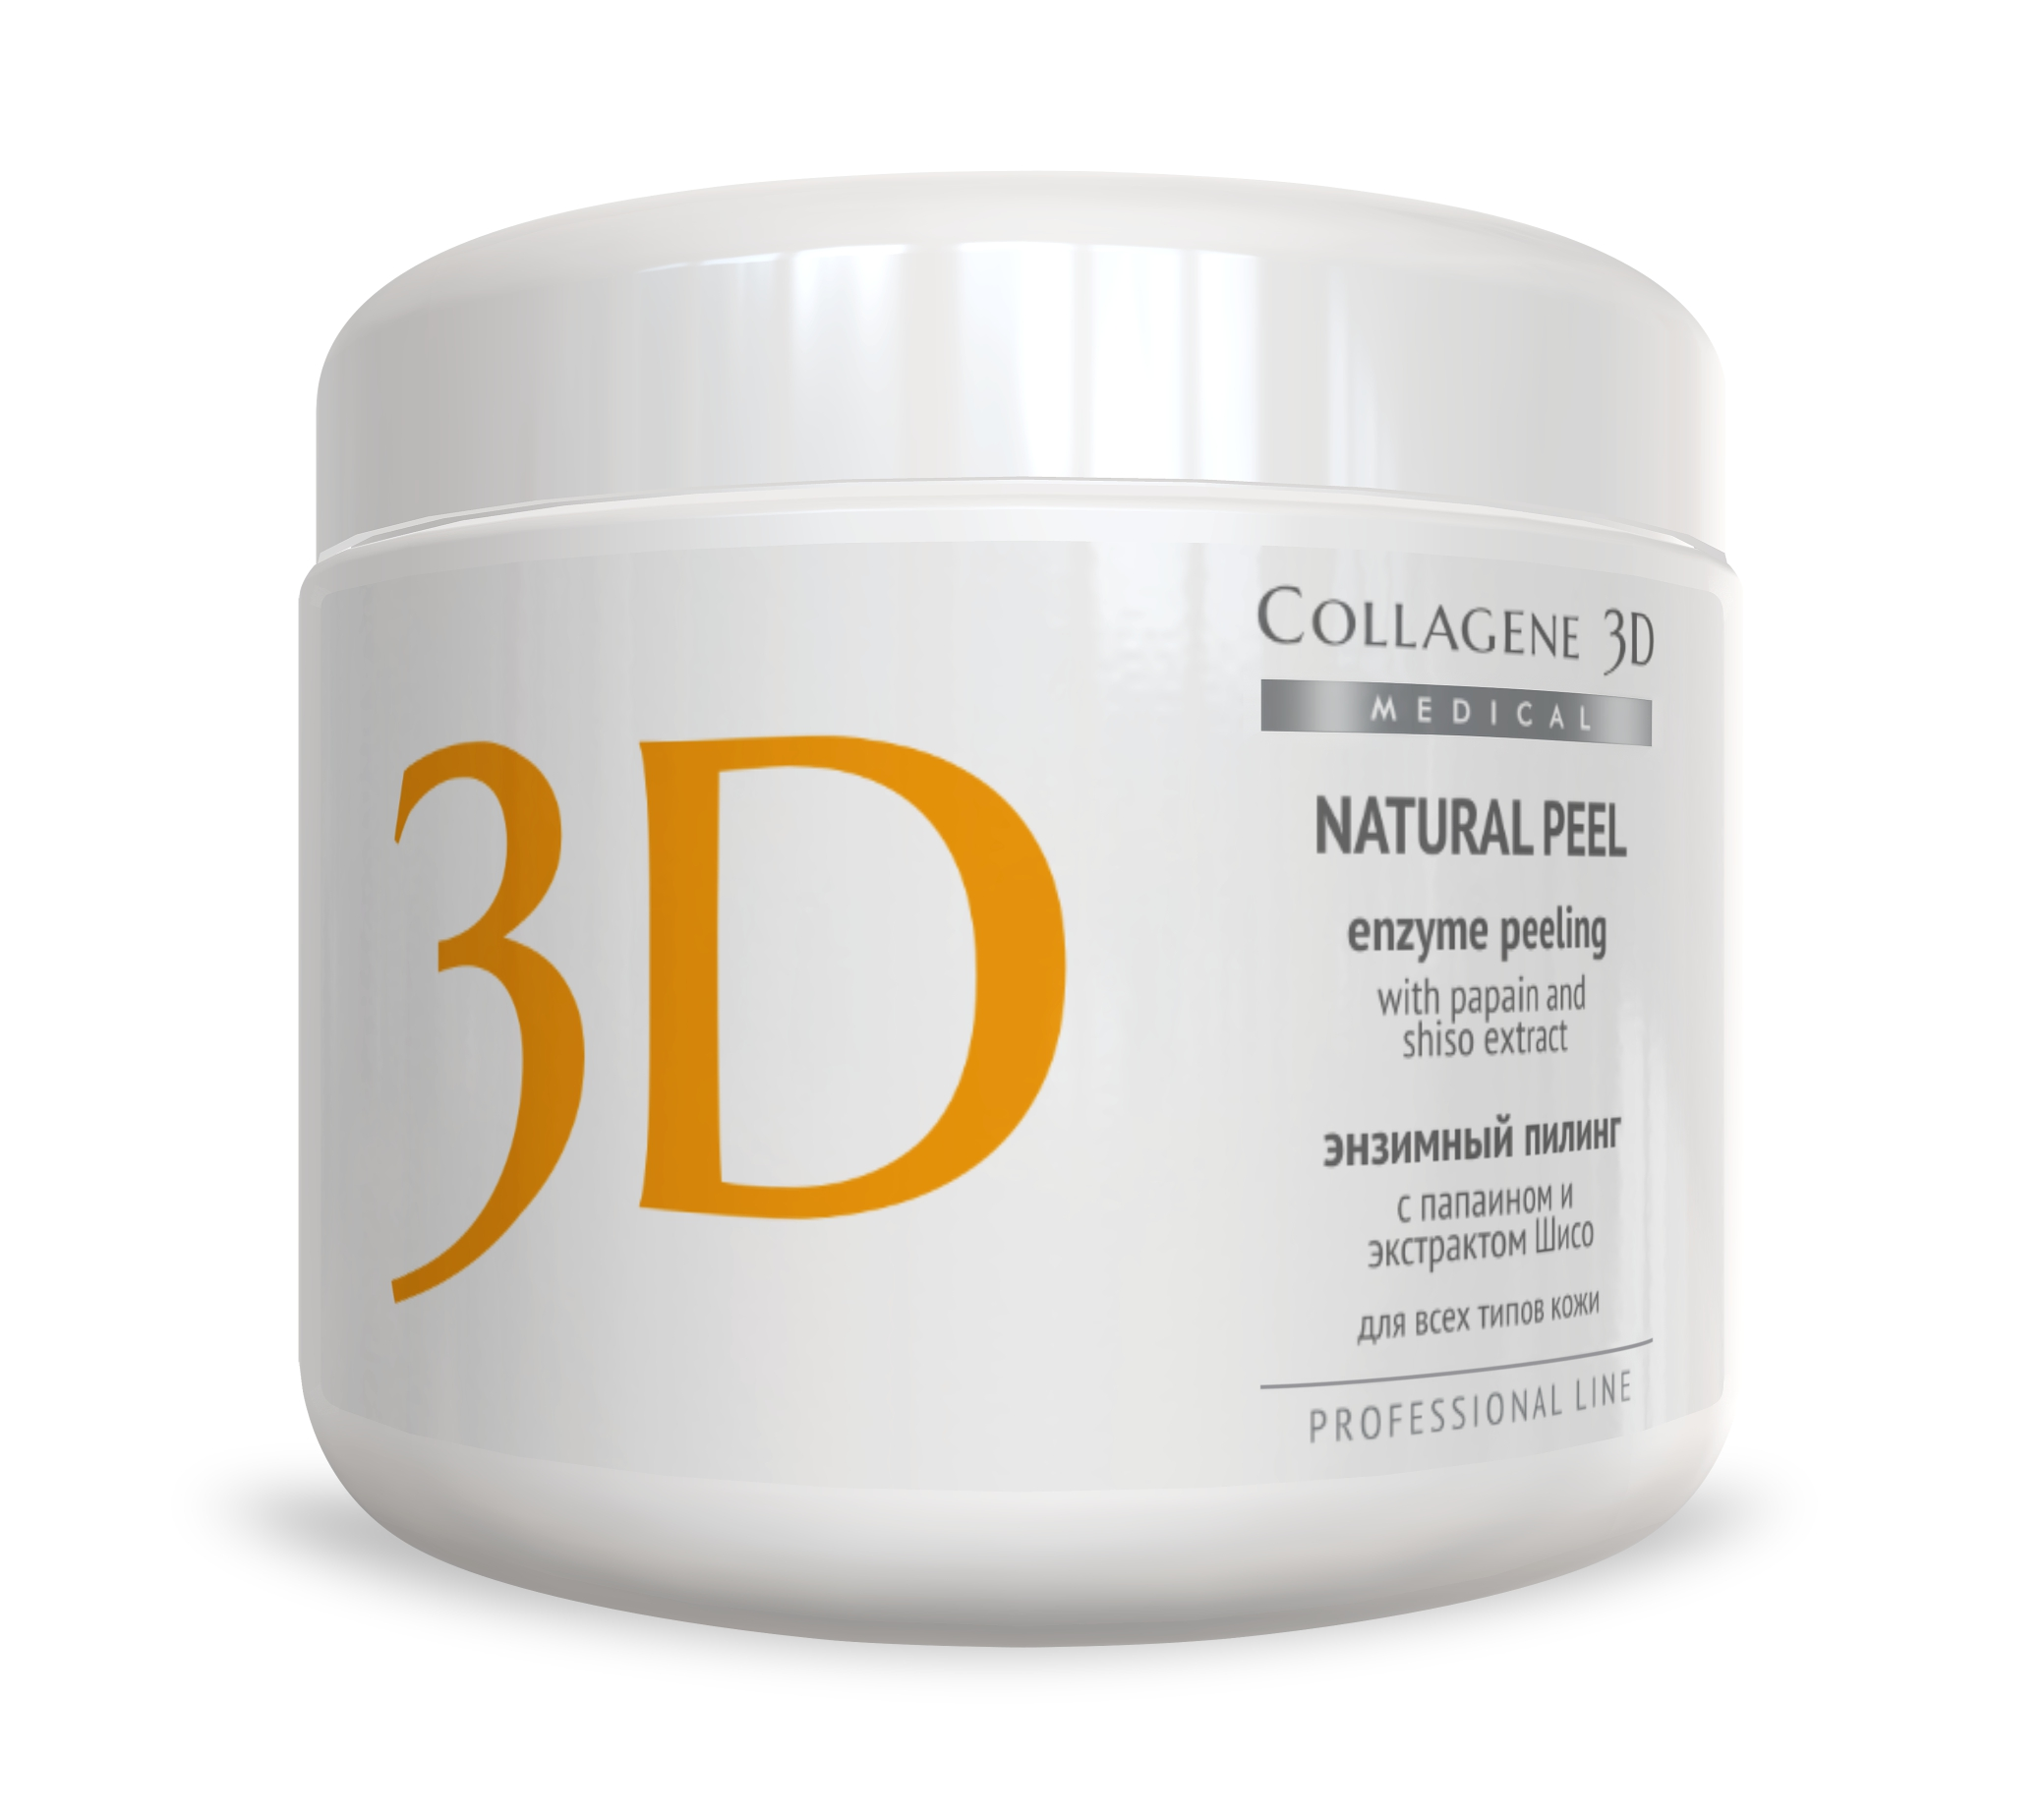 "MEDICAL COLLAGENE 3D Пилинг с папаином и экстрактом шисо ""Natural Peel"" 150г"